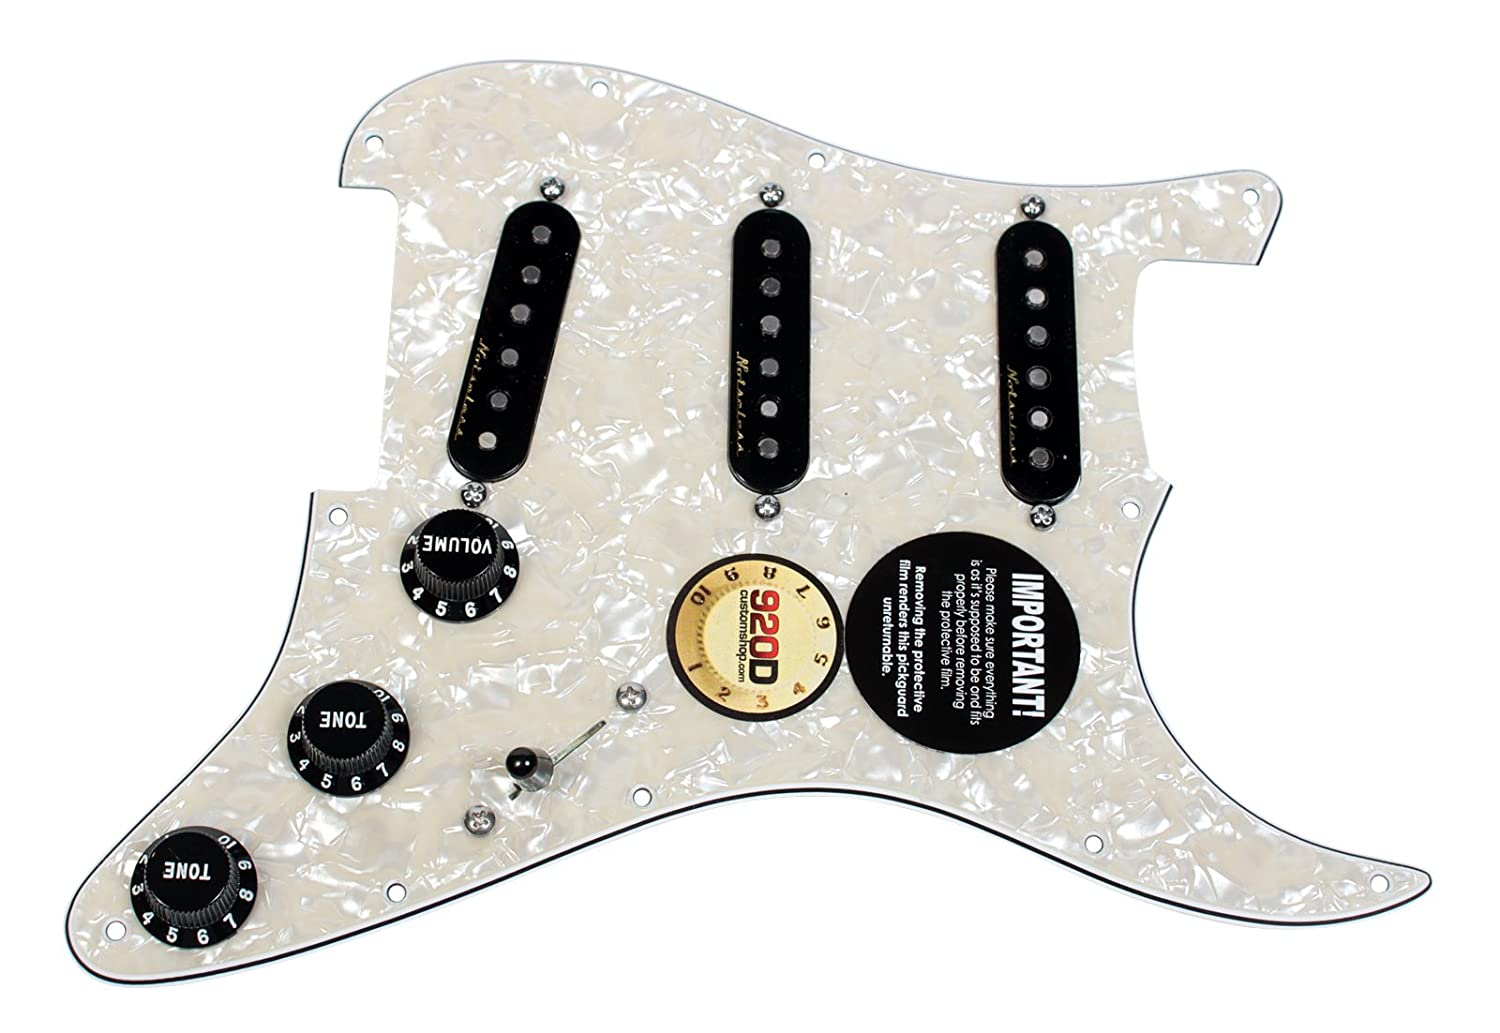 Fender Vintage Noiseless Loaded Strat Pickguard Aged White Pearl / Black boat output loaded jack chrome plate socket for fender strat